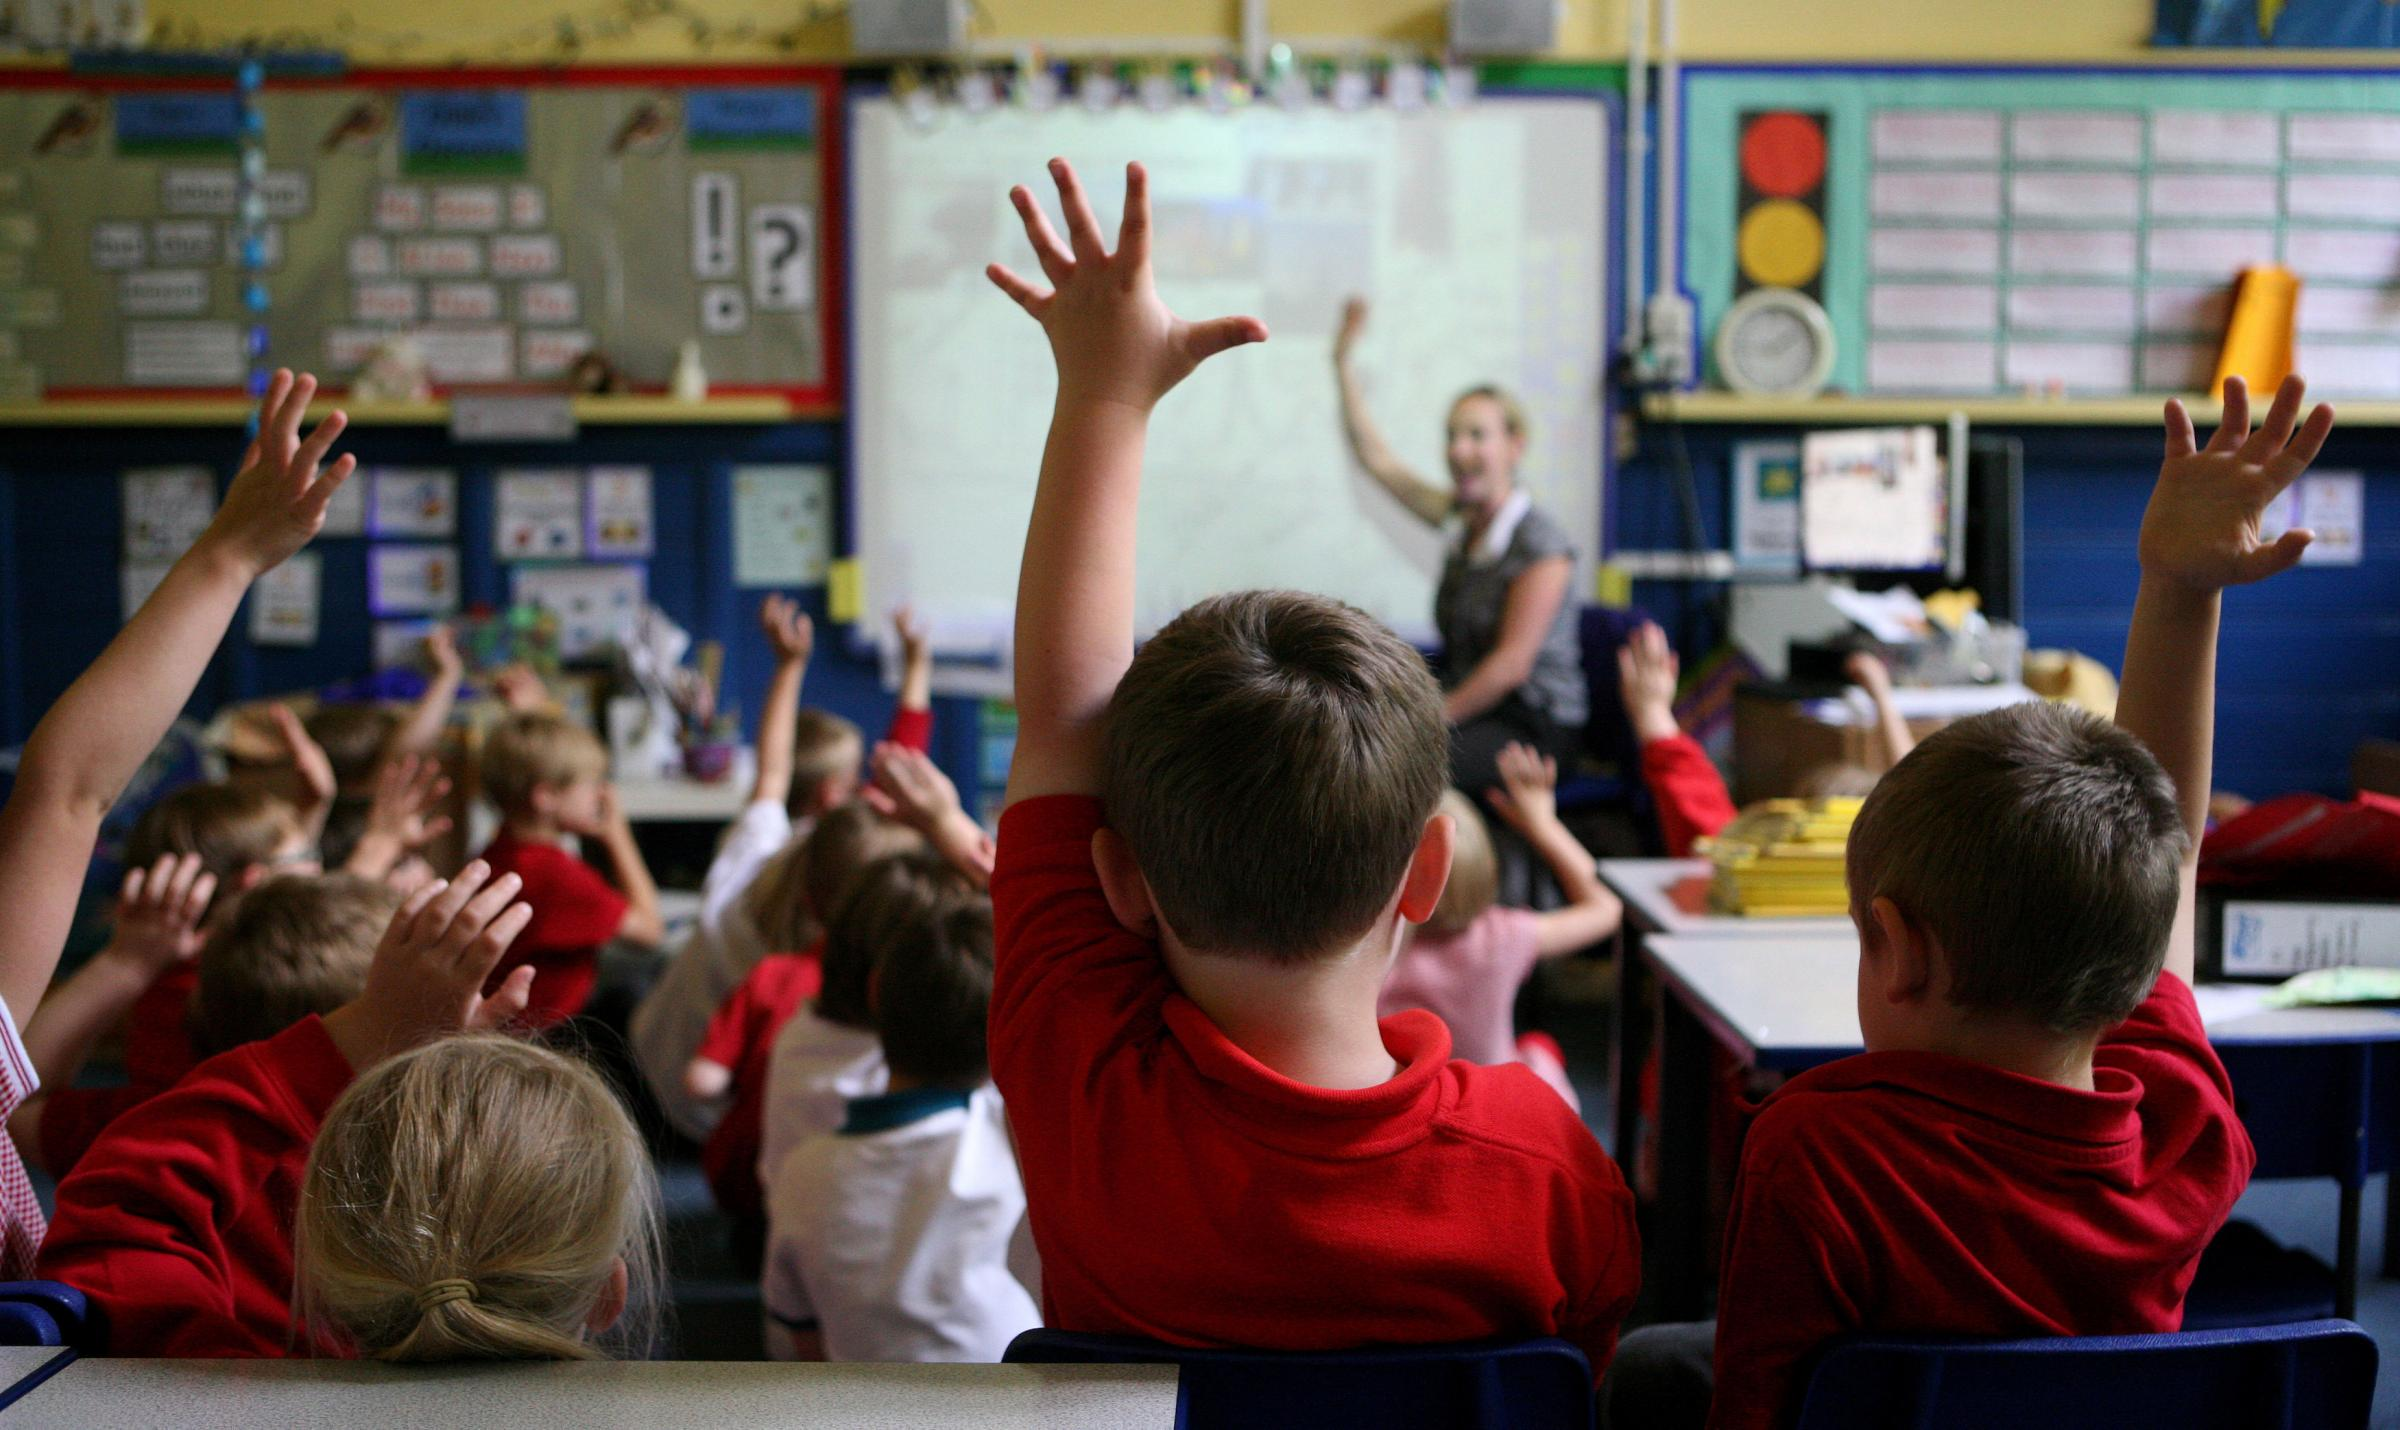 RECRUITMENT: Teaching unions say vacancy rates are so high as a result of an escalating teacher recruitment and retention crisis